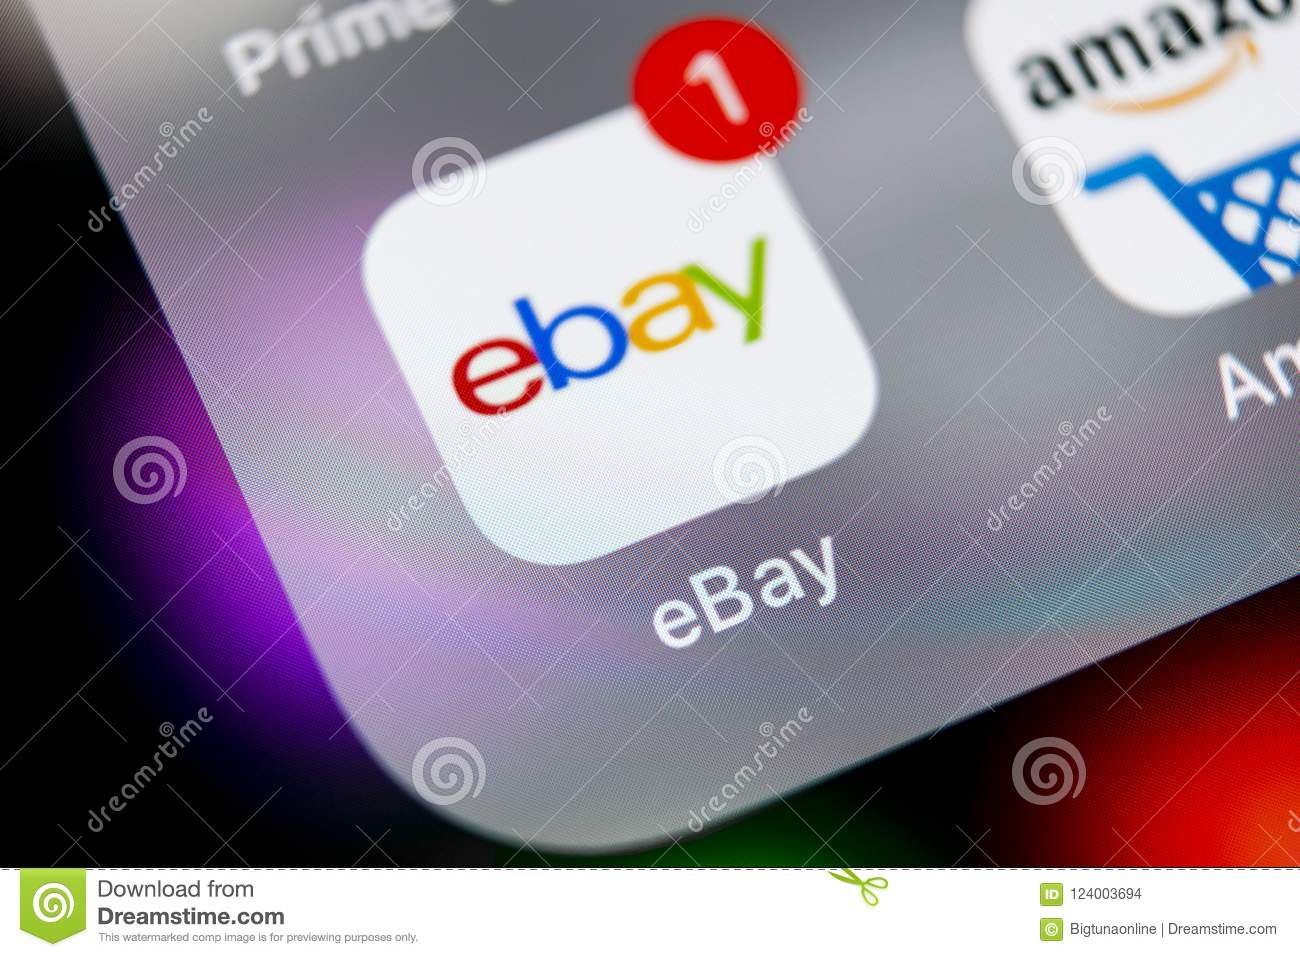 Ebay Application Icon On Apple Iphone X Screen Close Up Ebay App Icon Ebay Com Is Largest Online Auction And Shopping Websites Editorial Stock Image Image Of Internet Editorial 124003694